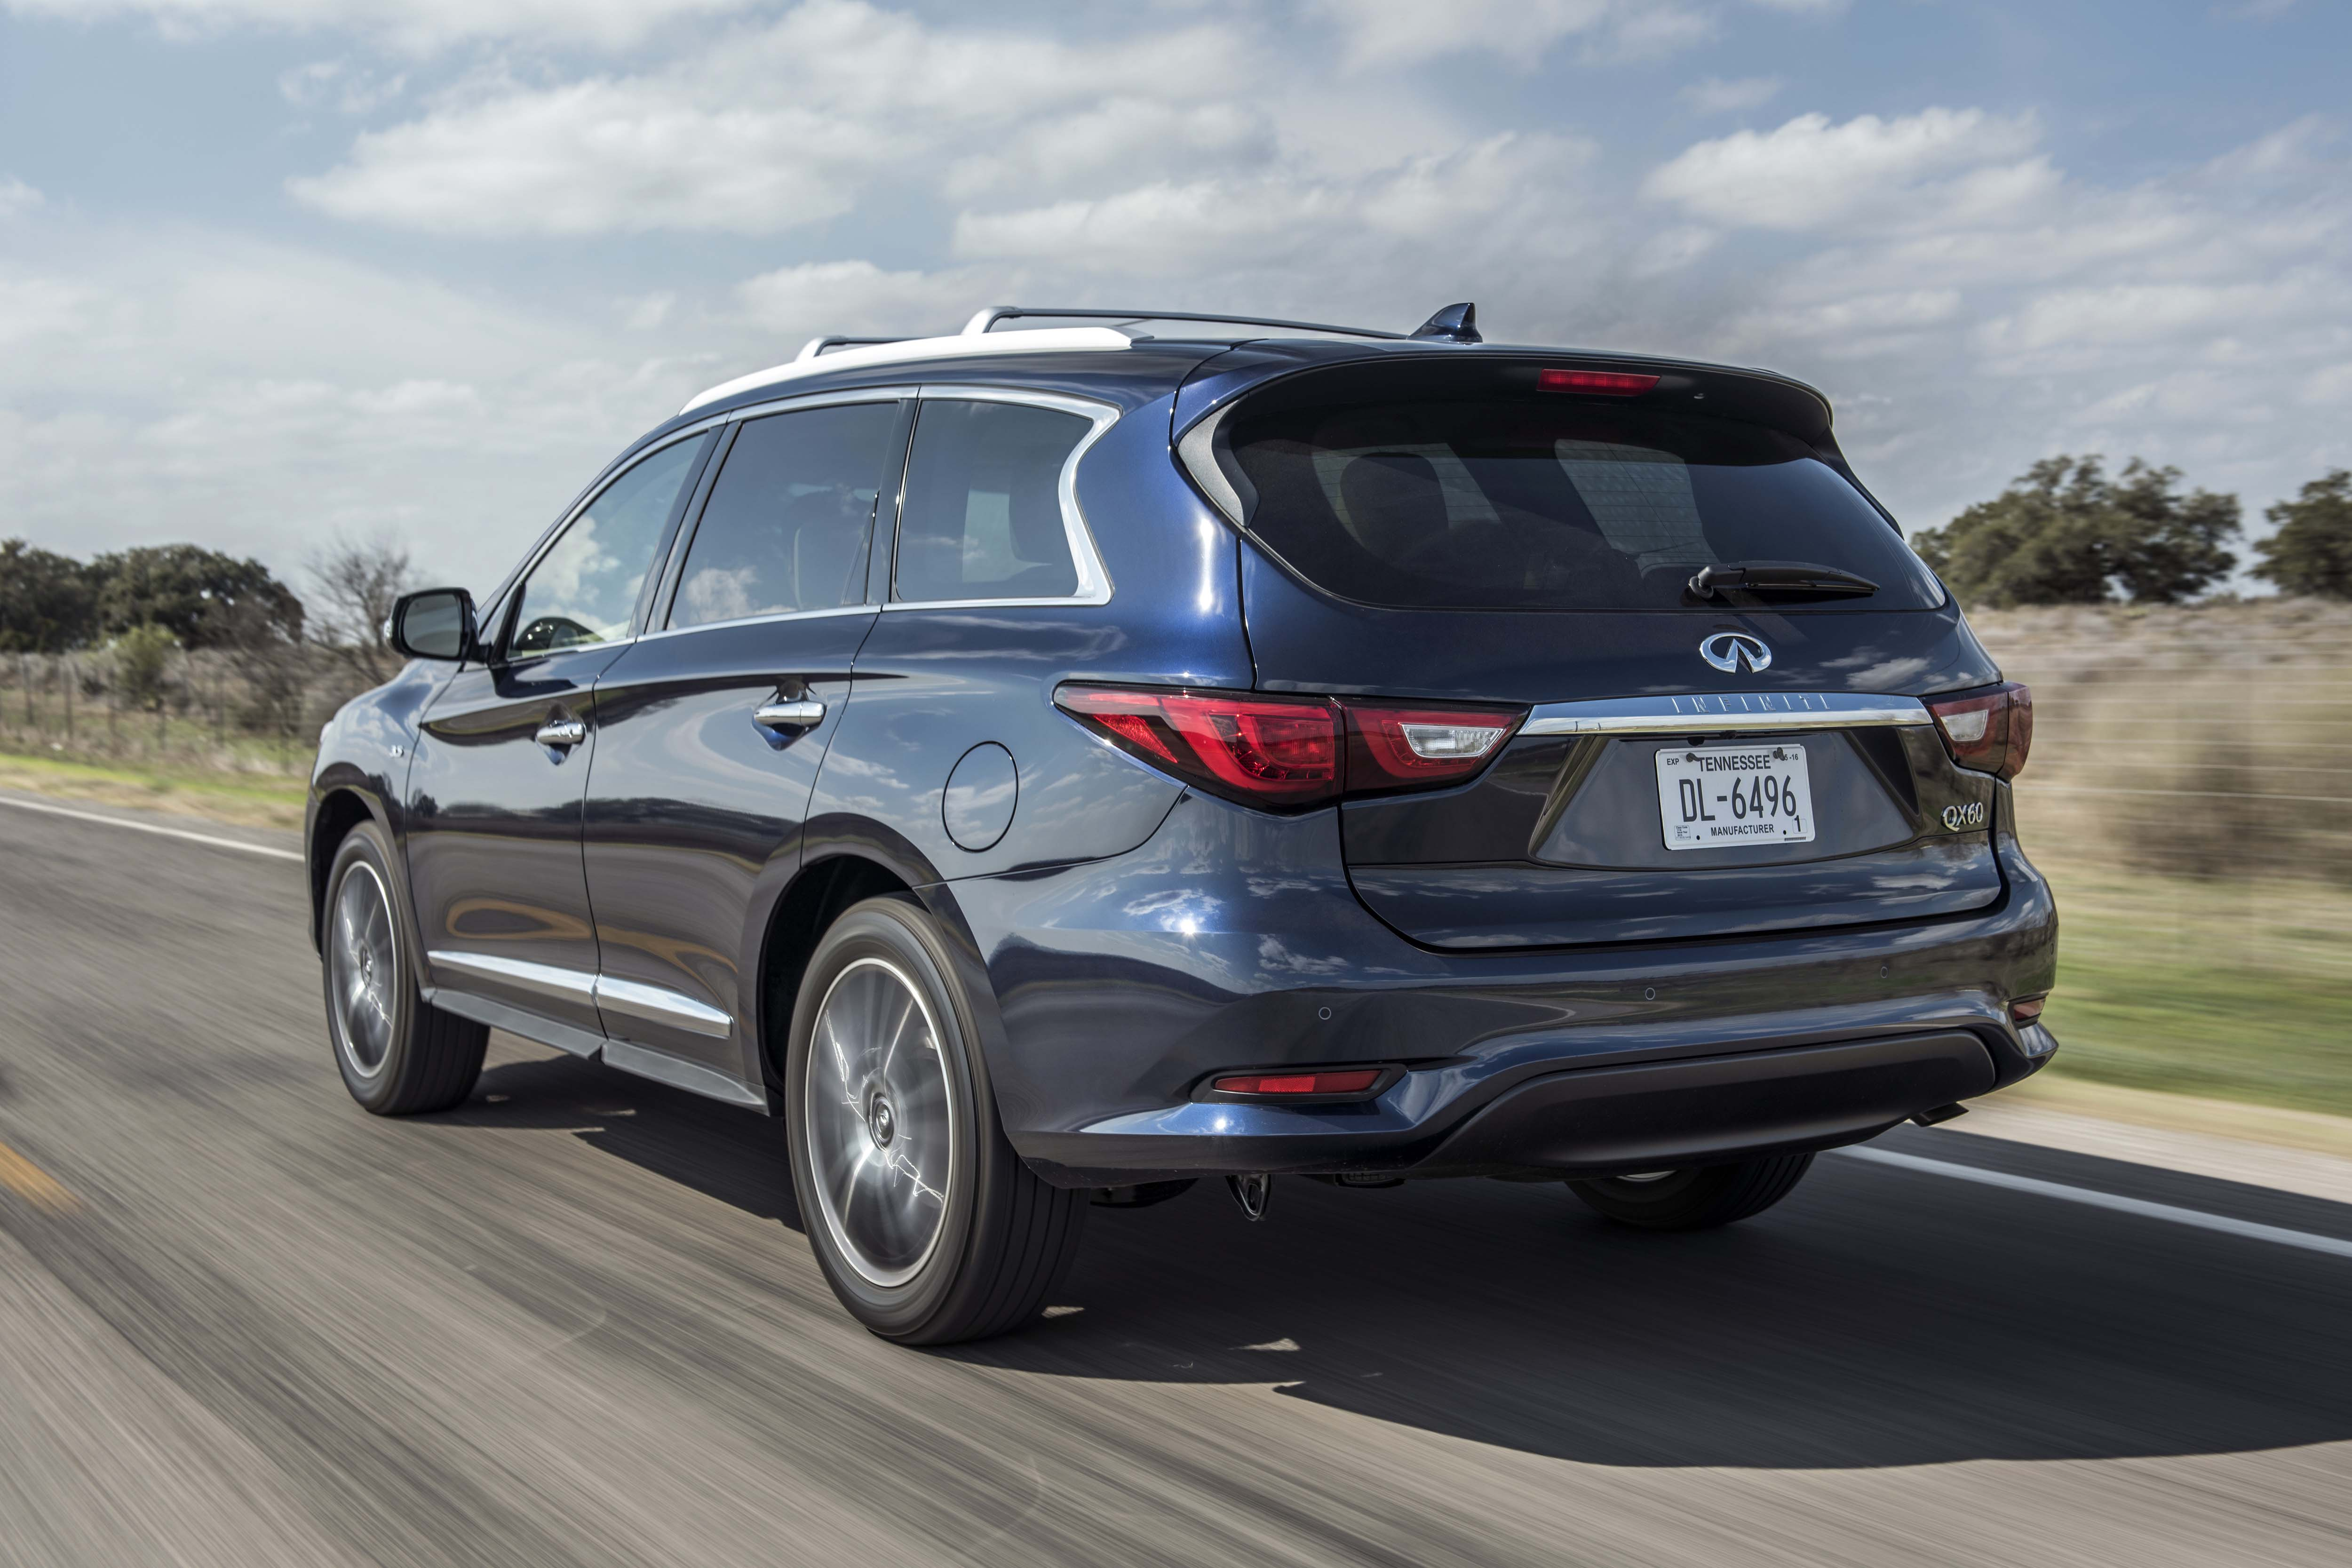 2016 Infiniti QX60: Family Built, Driver Designed